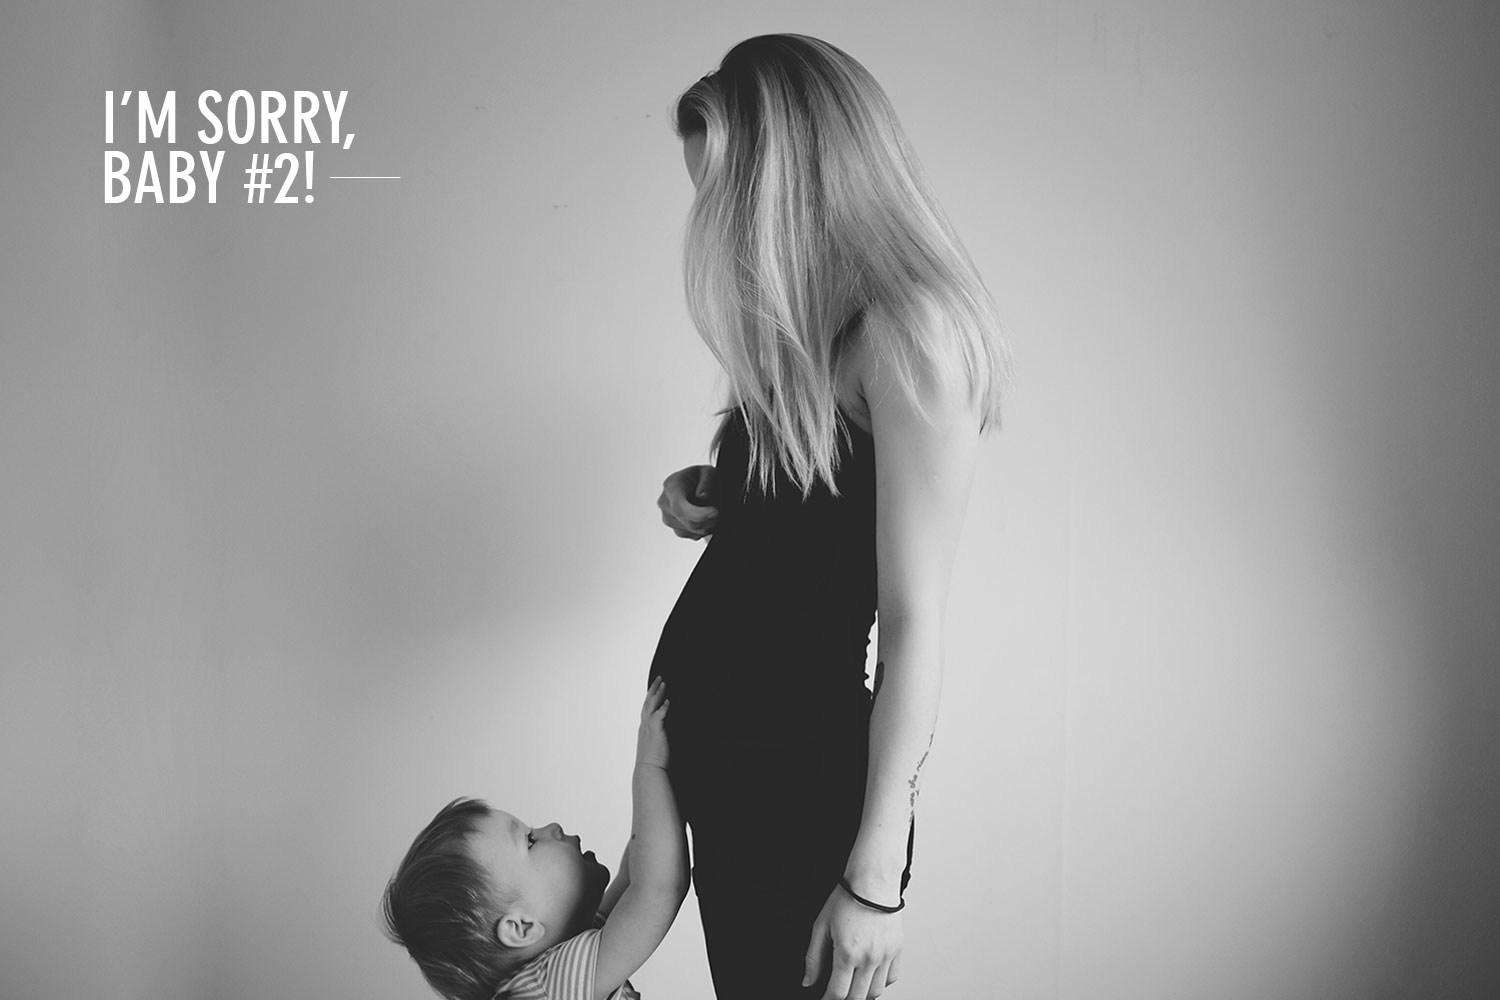 I'm sorry, baby #2! - An apology from your Mummy